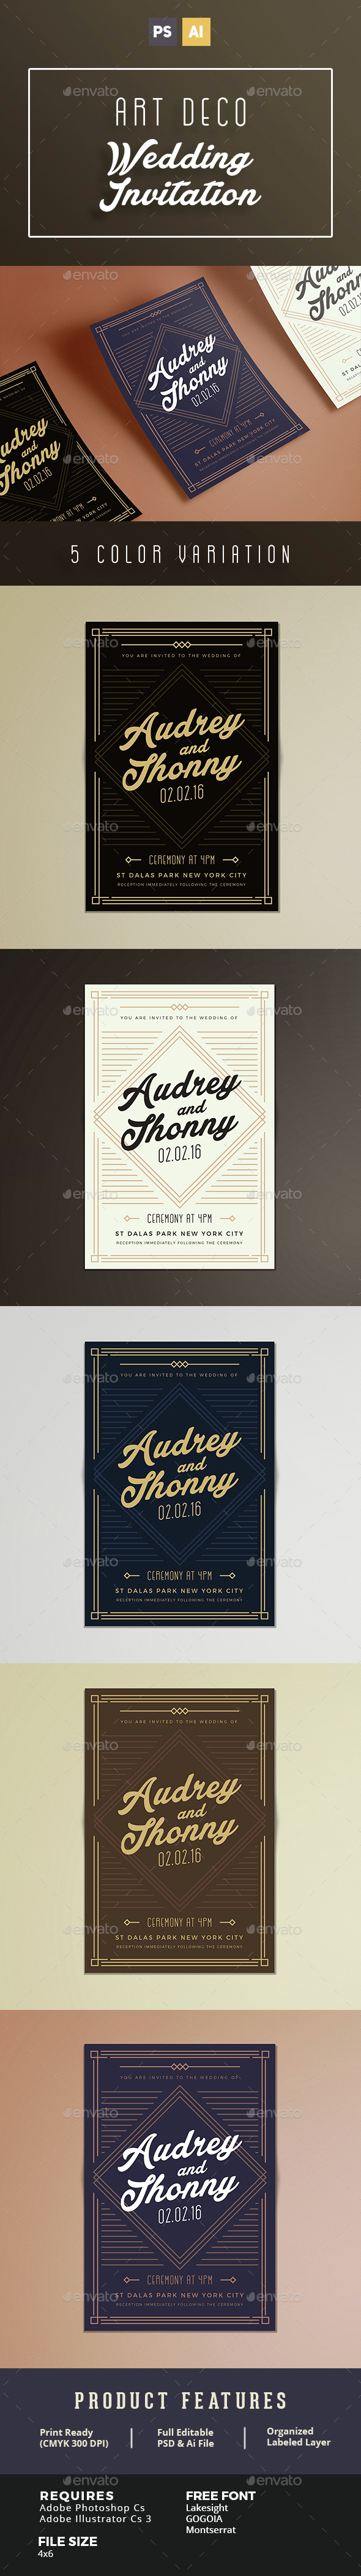 Art Deco Wedding Invitation - Weddings Cards & Invites